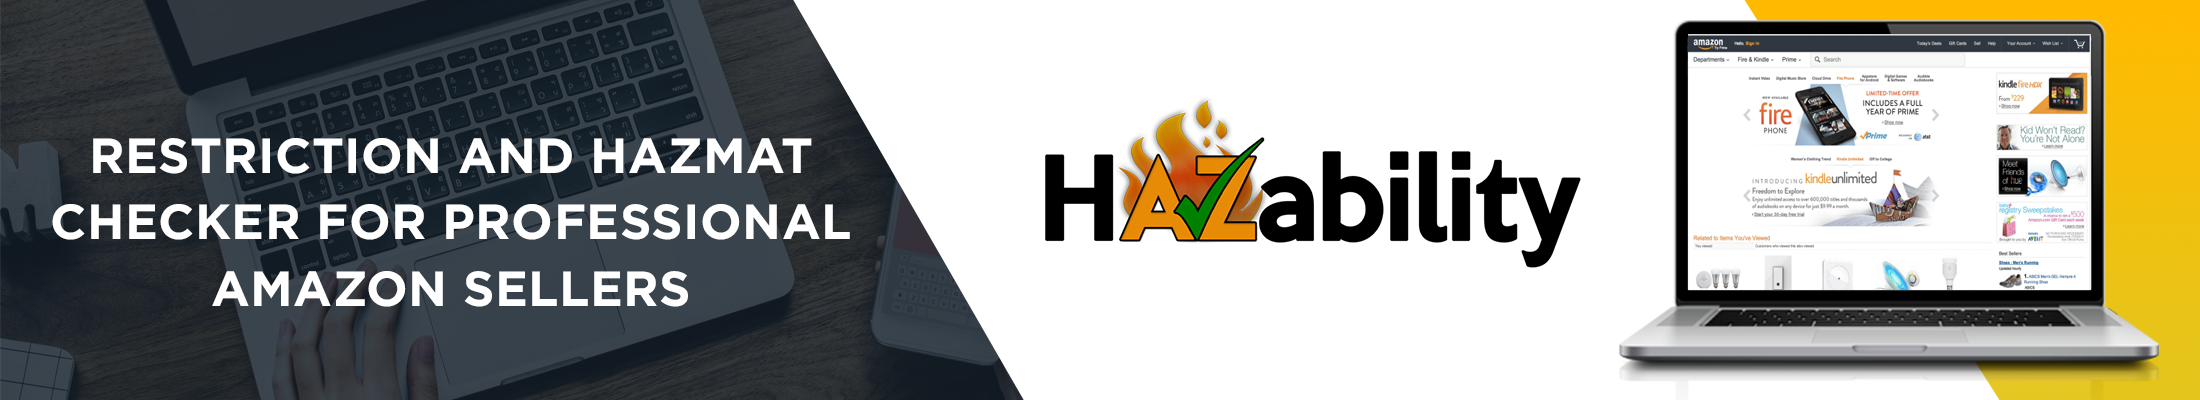 HAZability - Restriction and Hazmat checker for Professional Amazon Sellers